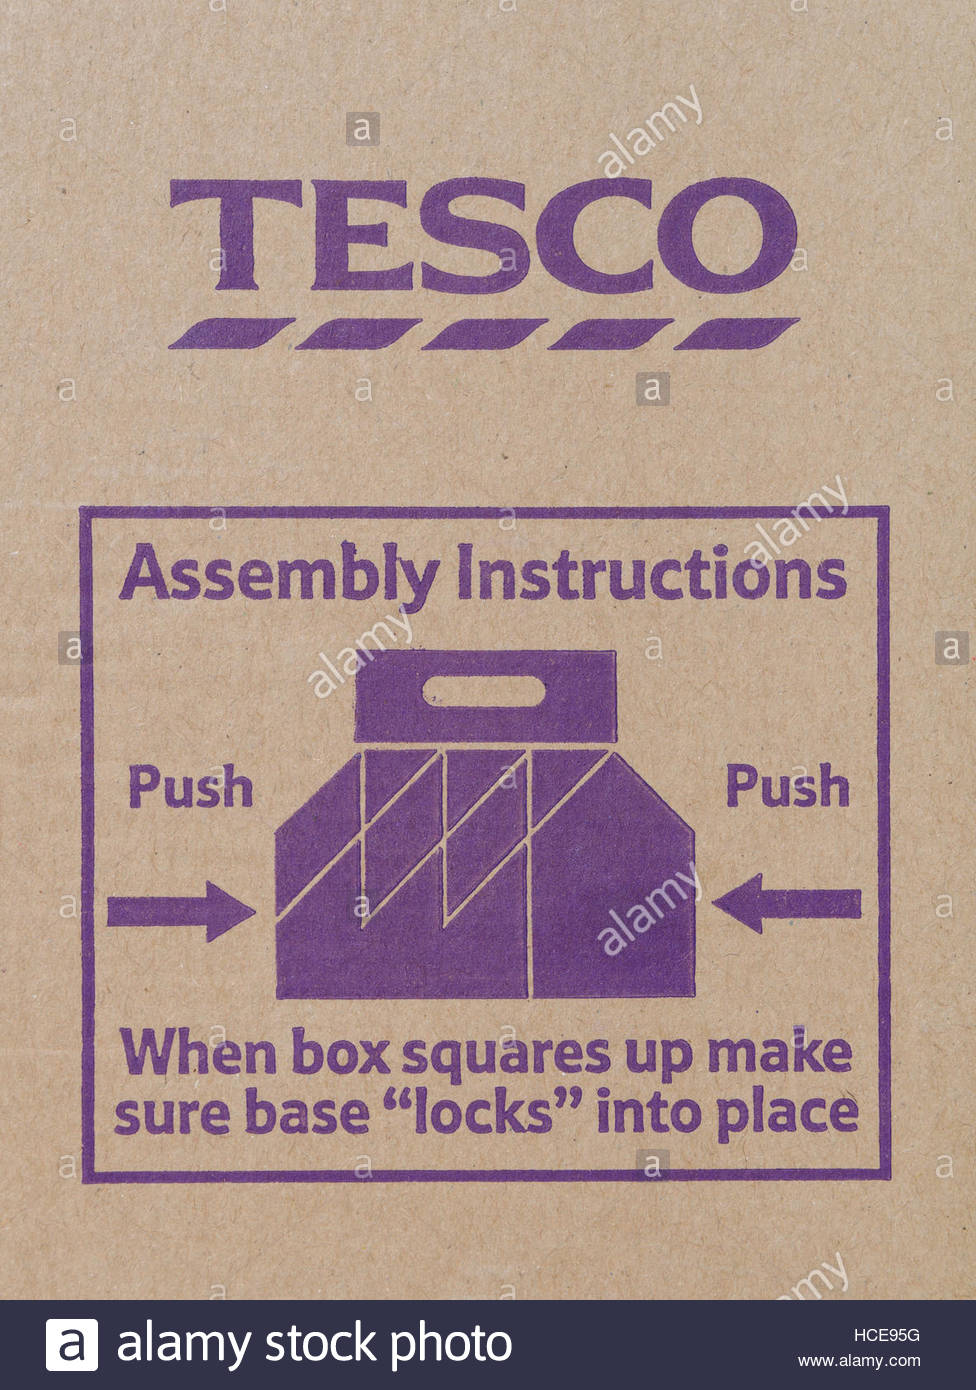 Assembly instructions printed on Carrier carton for Tesco bottles - Stock Image